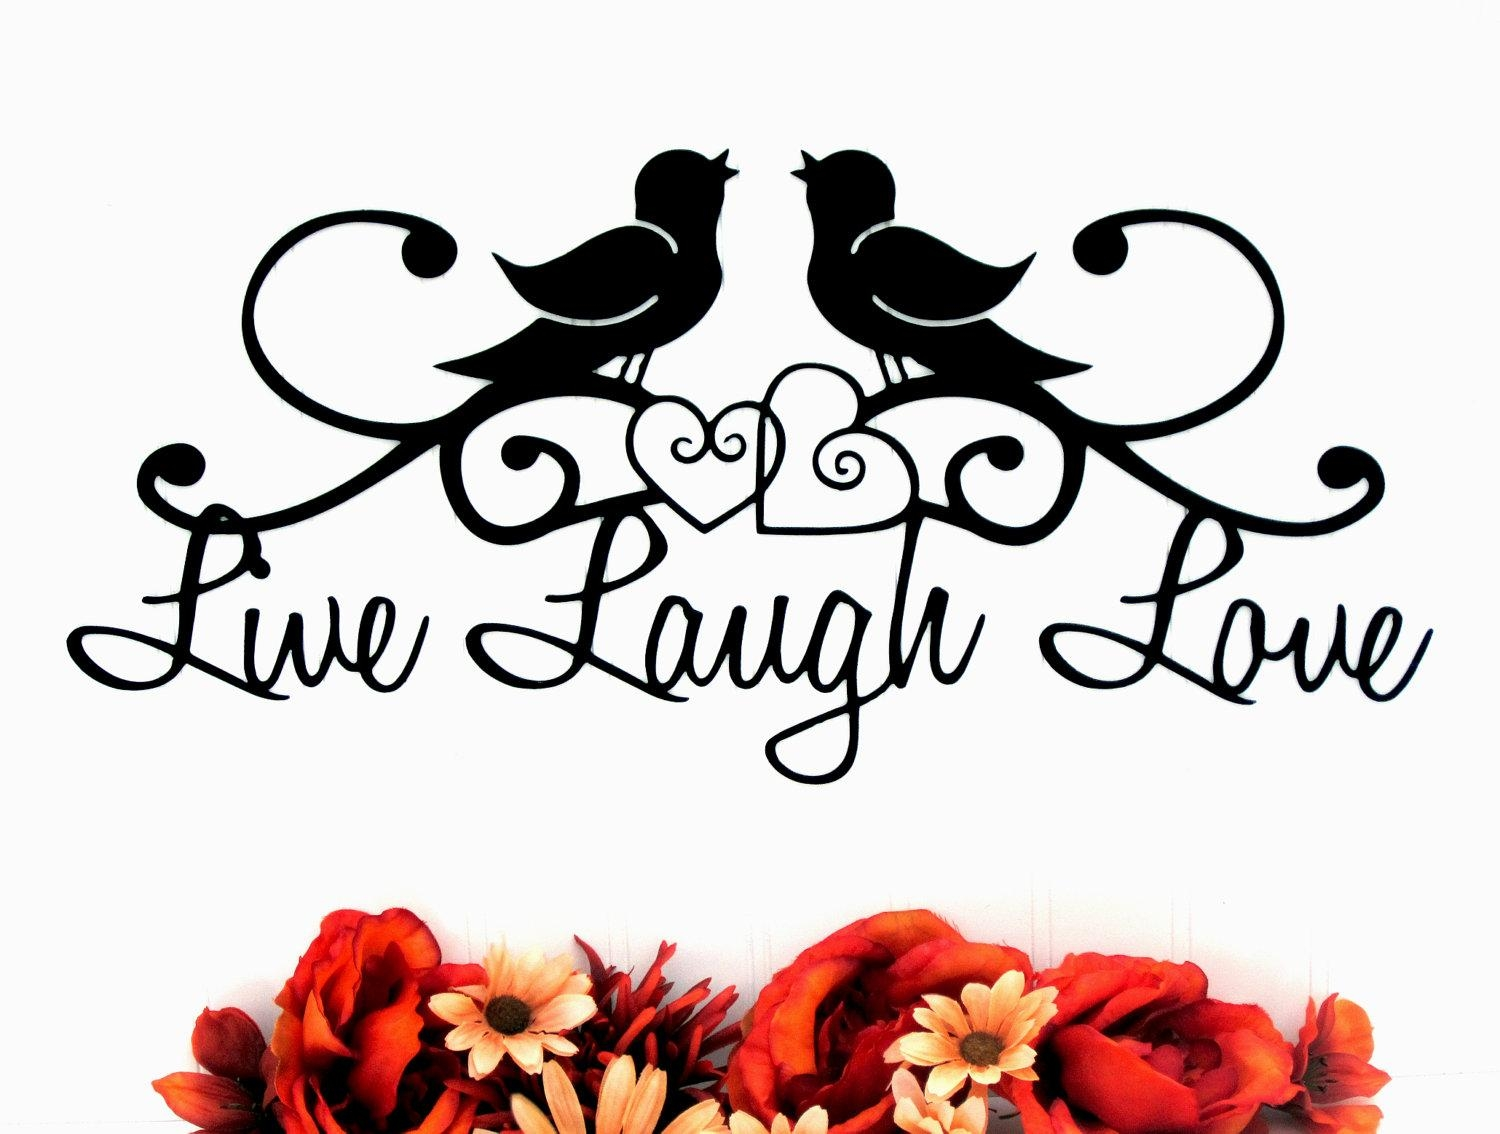 20 ideas of live laugh love wall art metal wall art ideas. Black Bedroom Furniture Sets. Home Design Ideas